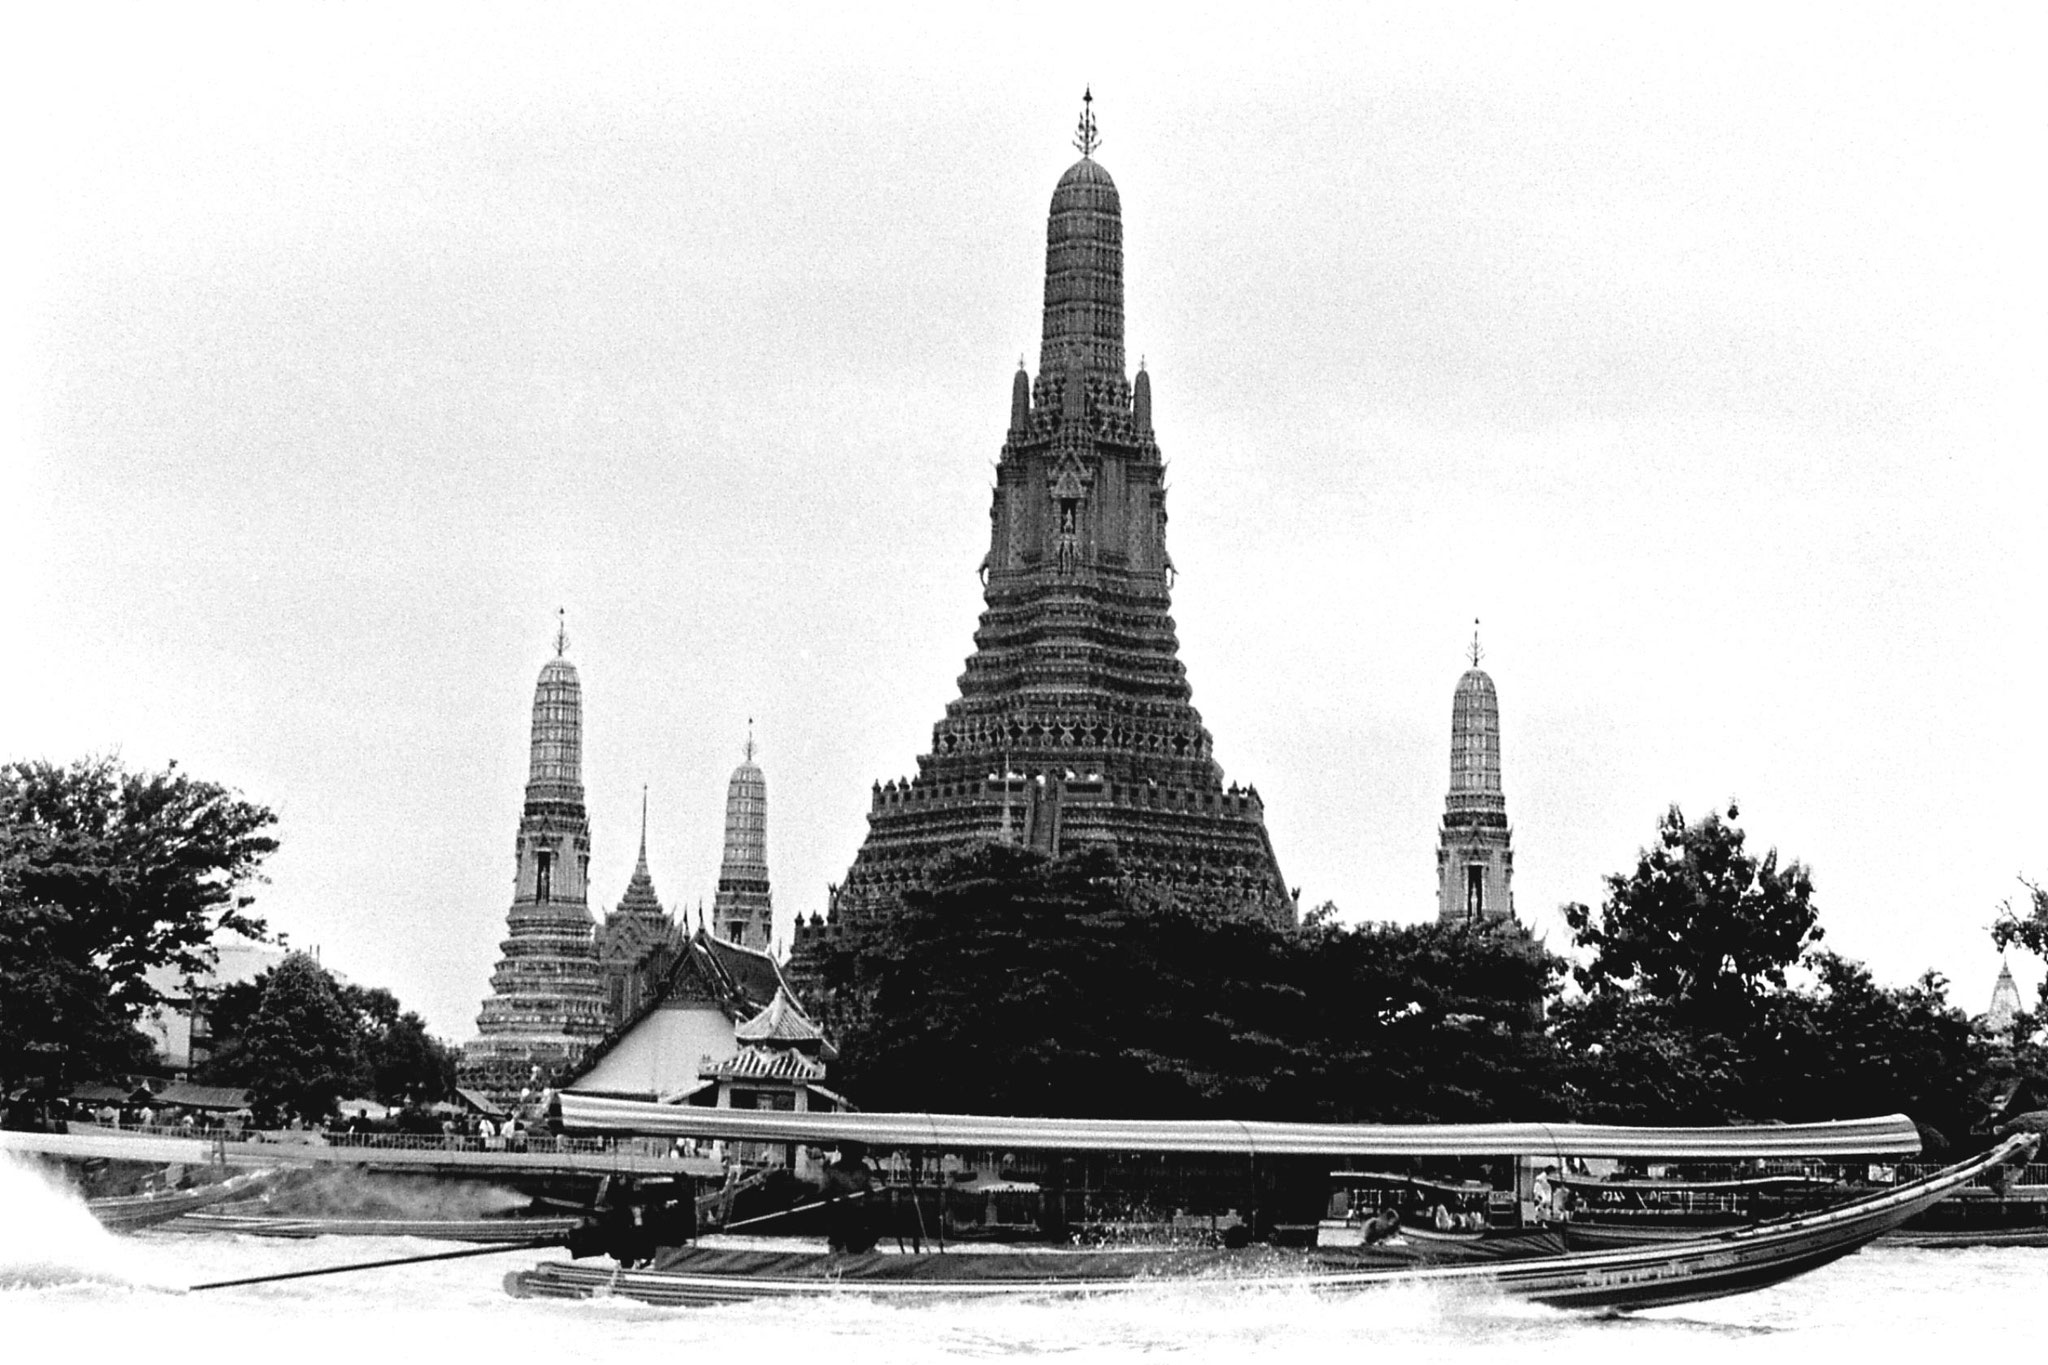 17/6/1990: 22: Bangkok, on the river Wat Arun Temple of Dawn